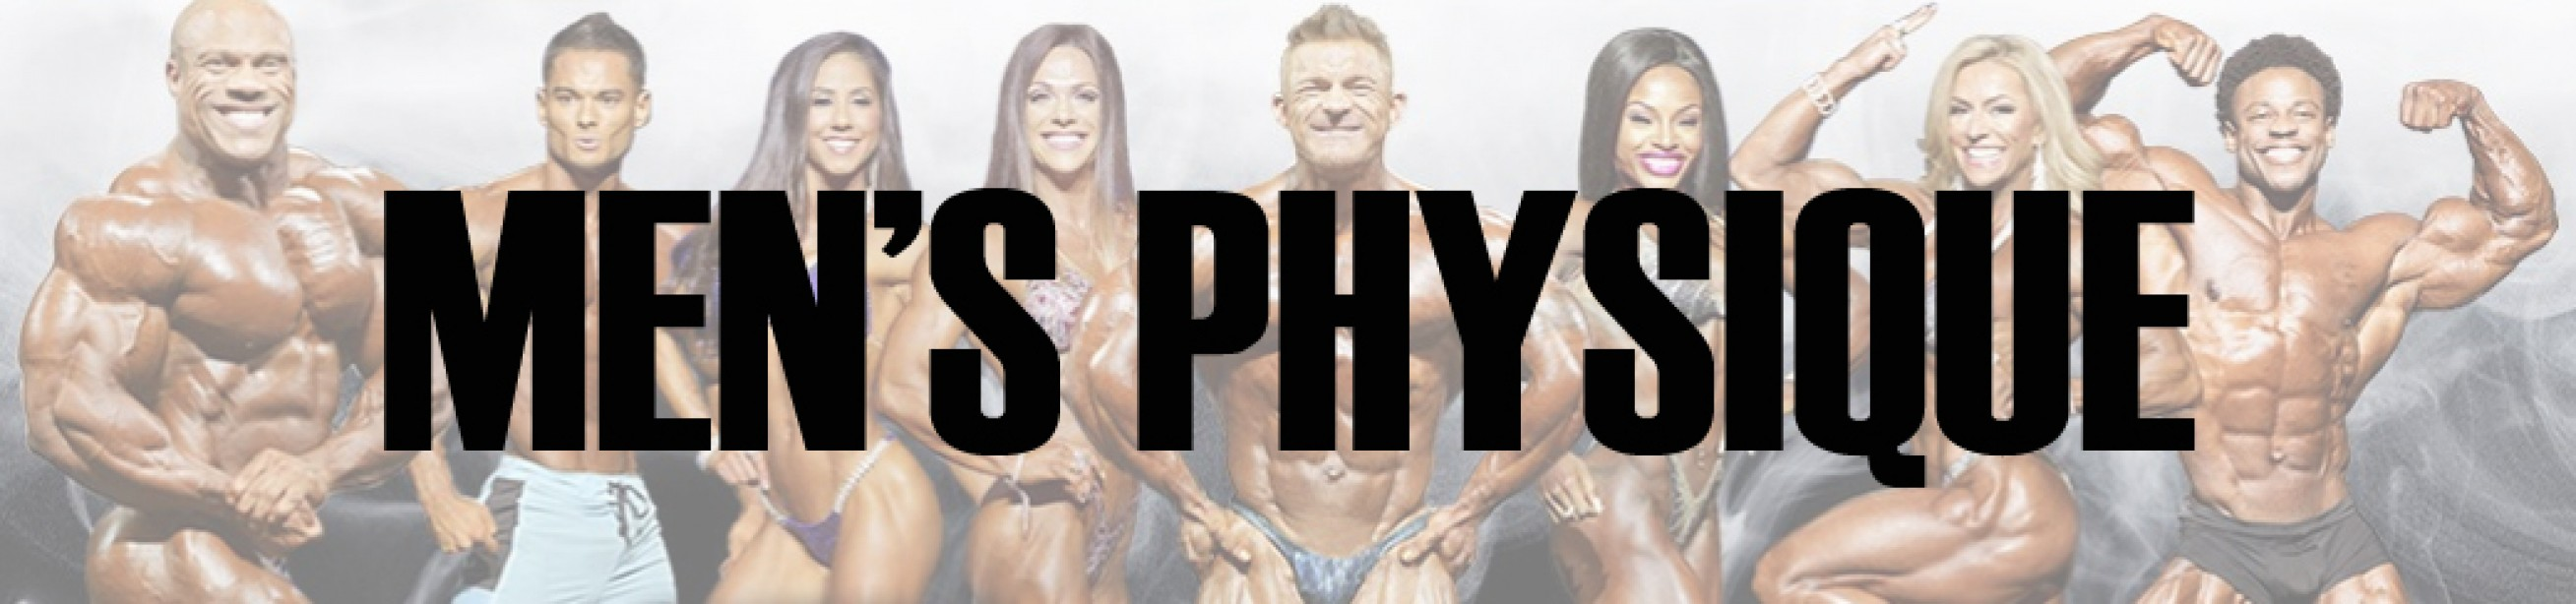 2018 Arnold Classic Men's Physique Call Out Report